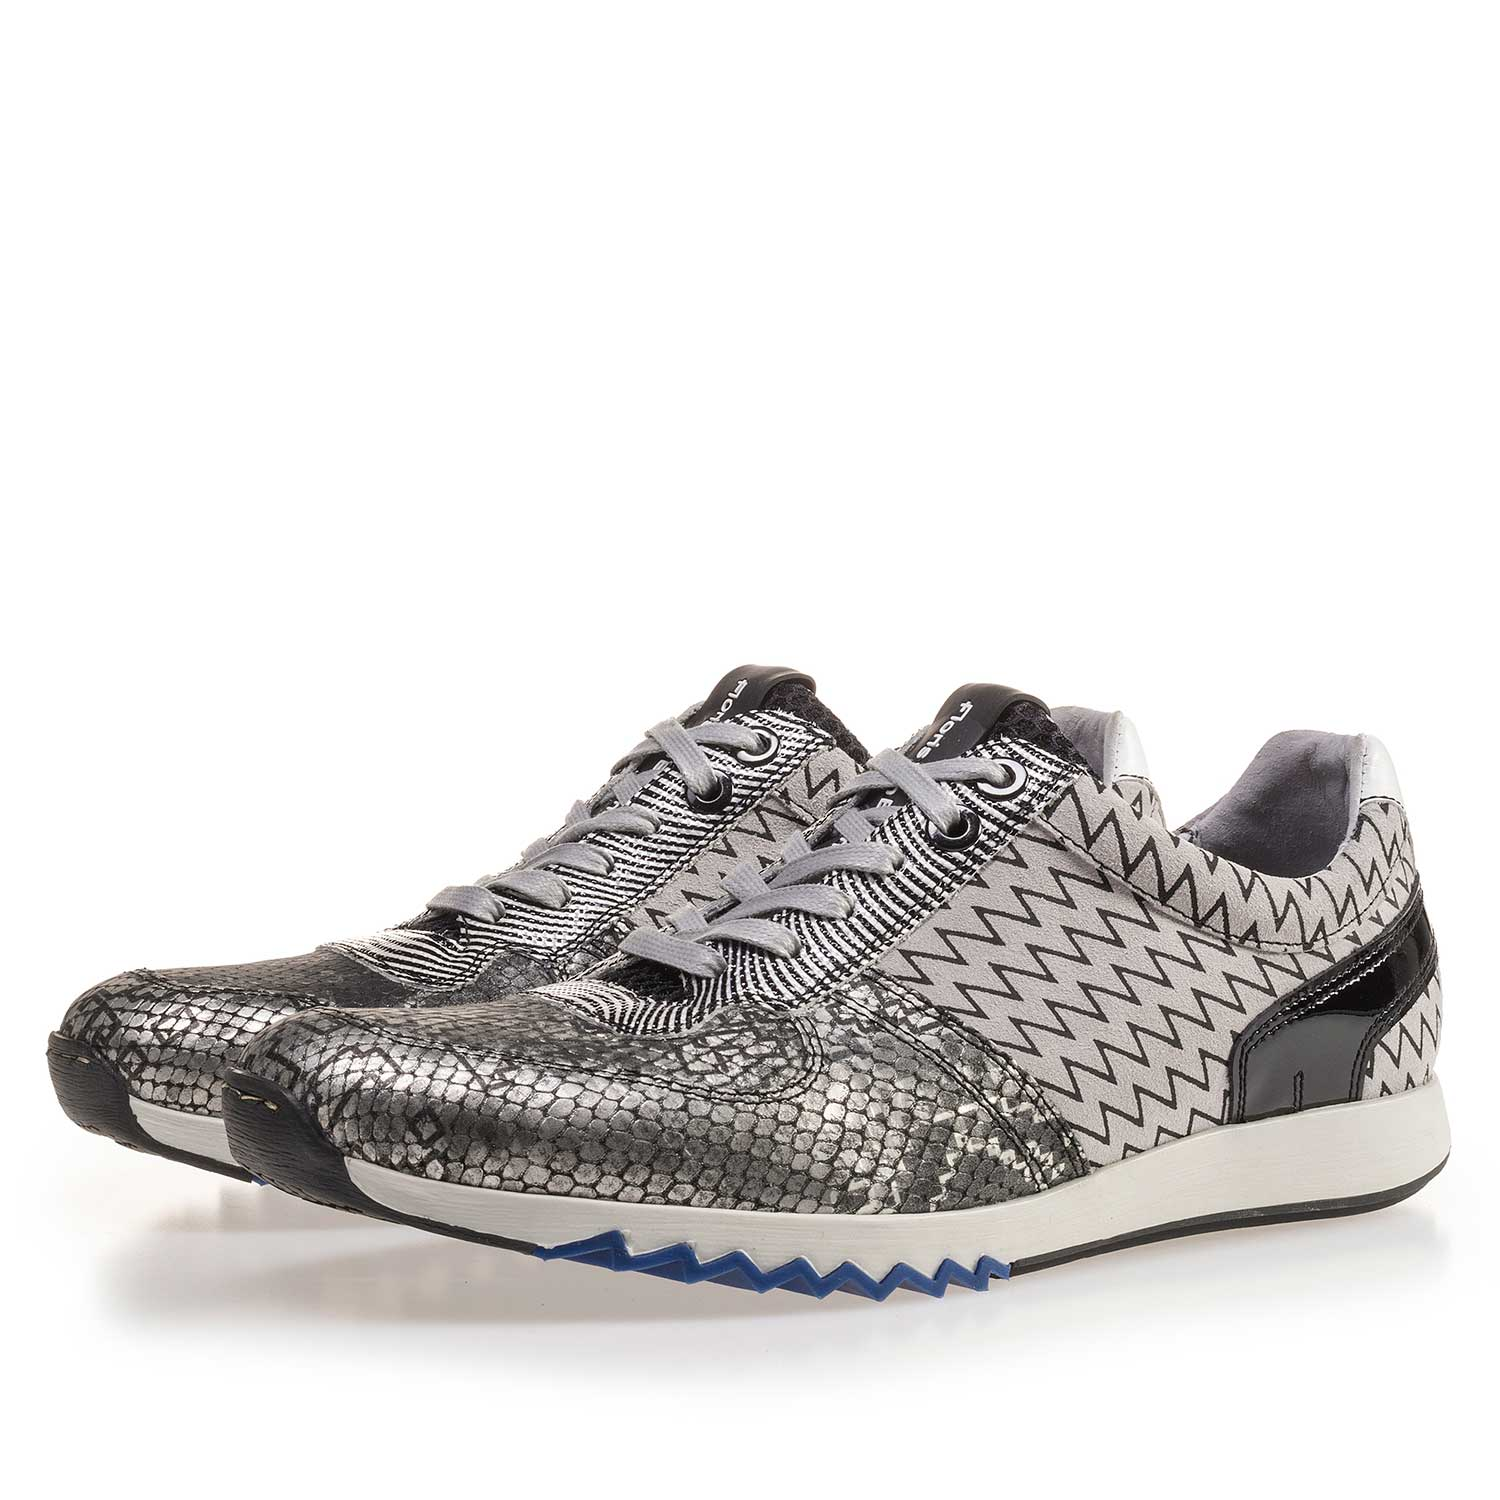 16204/01 - Grey patterned Premium leather sneaker